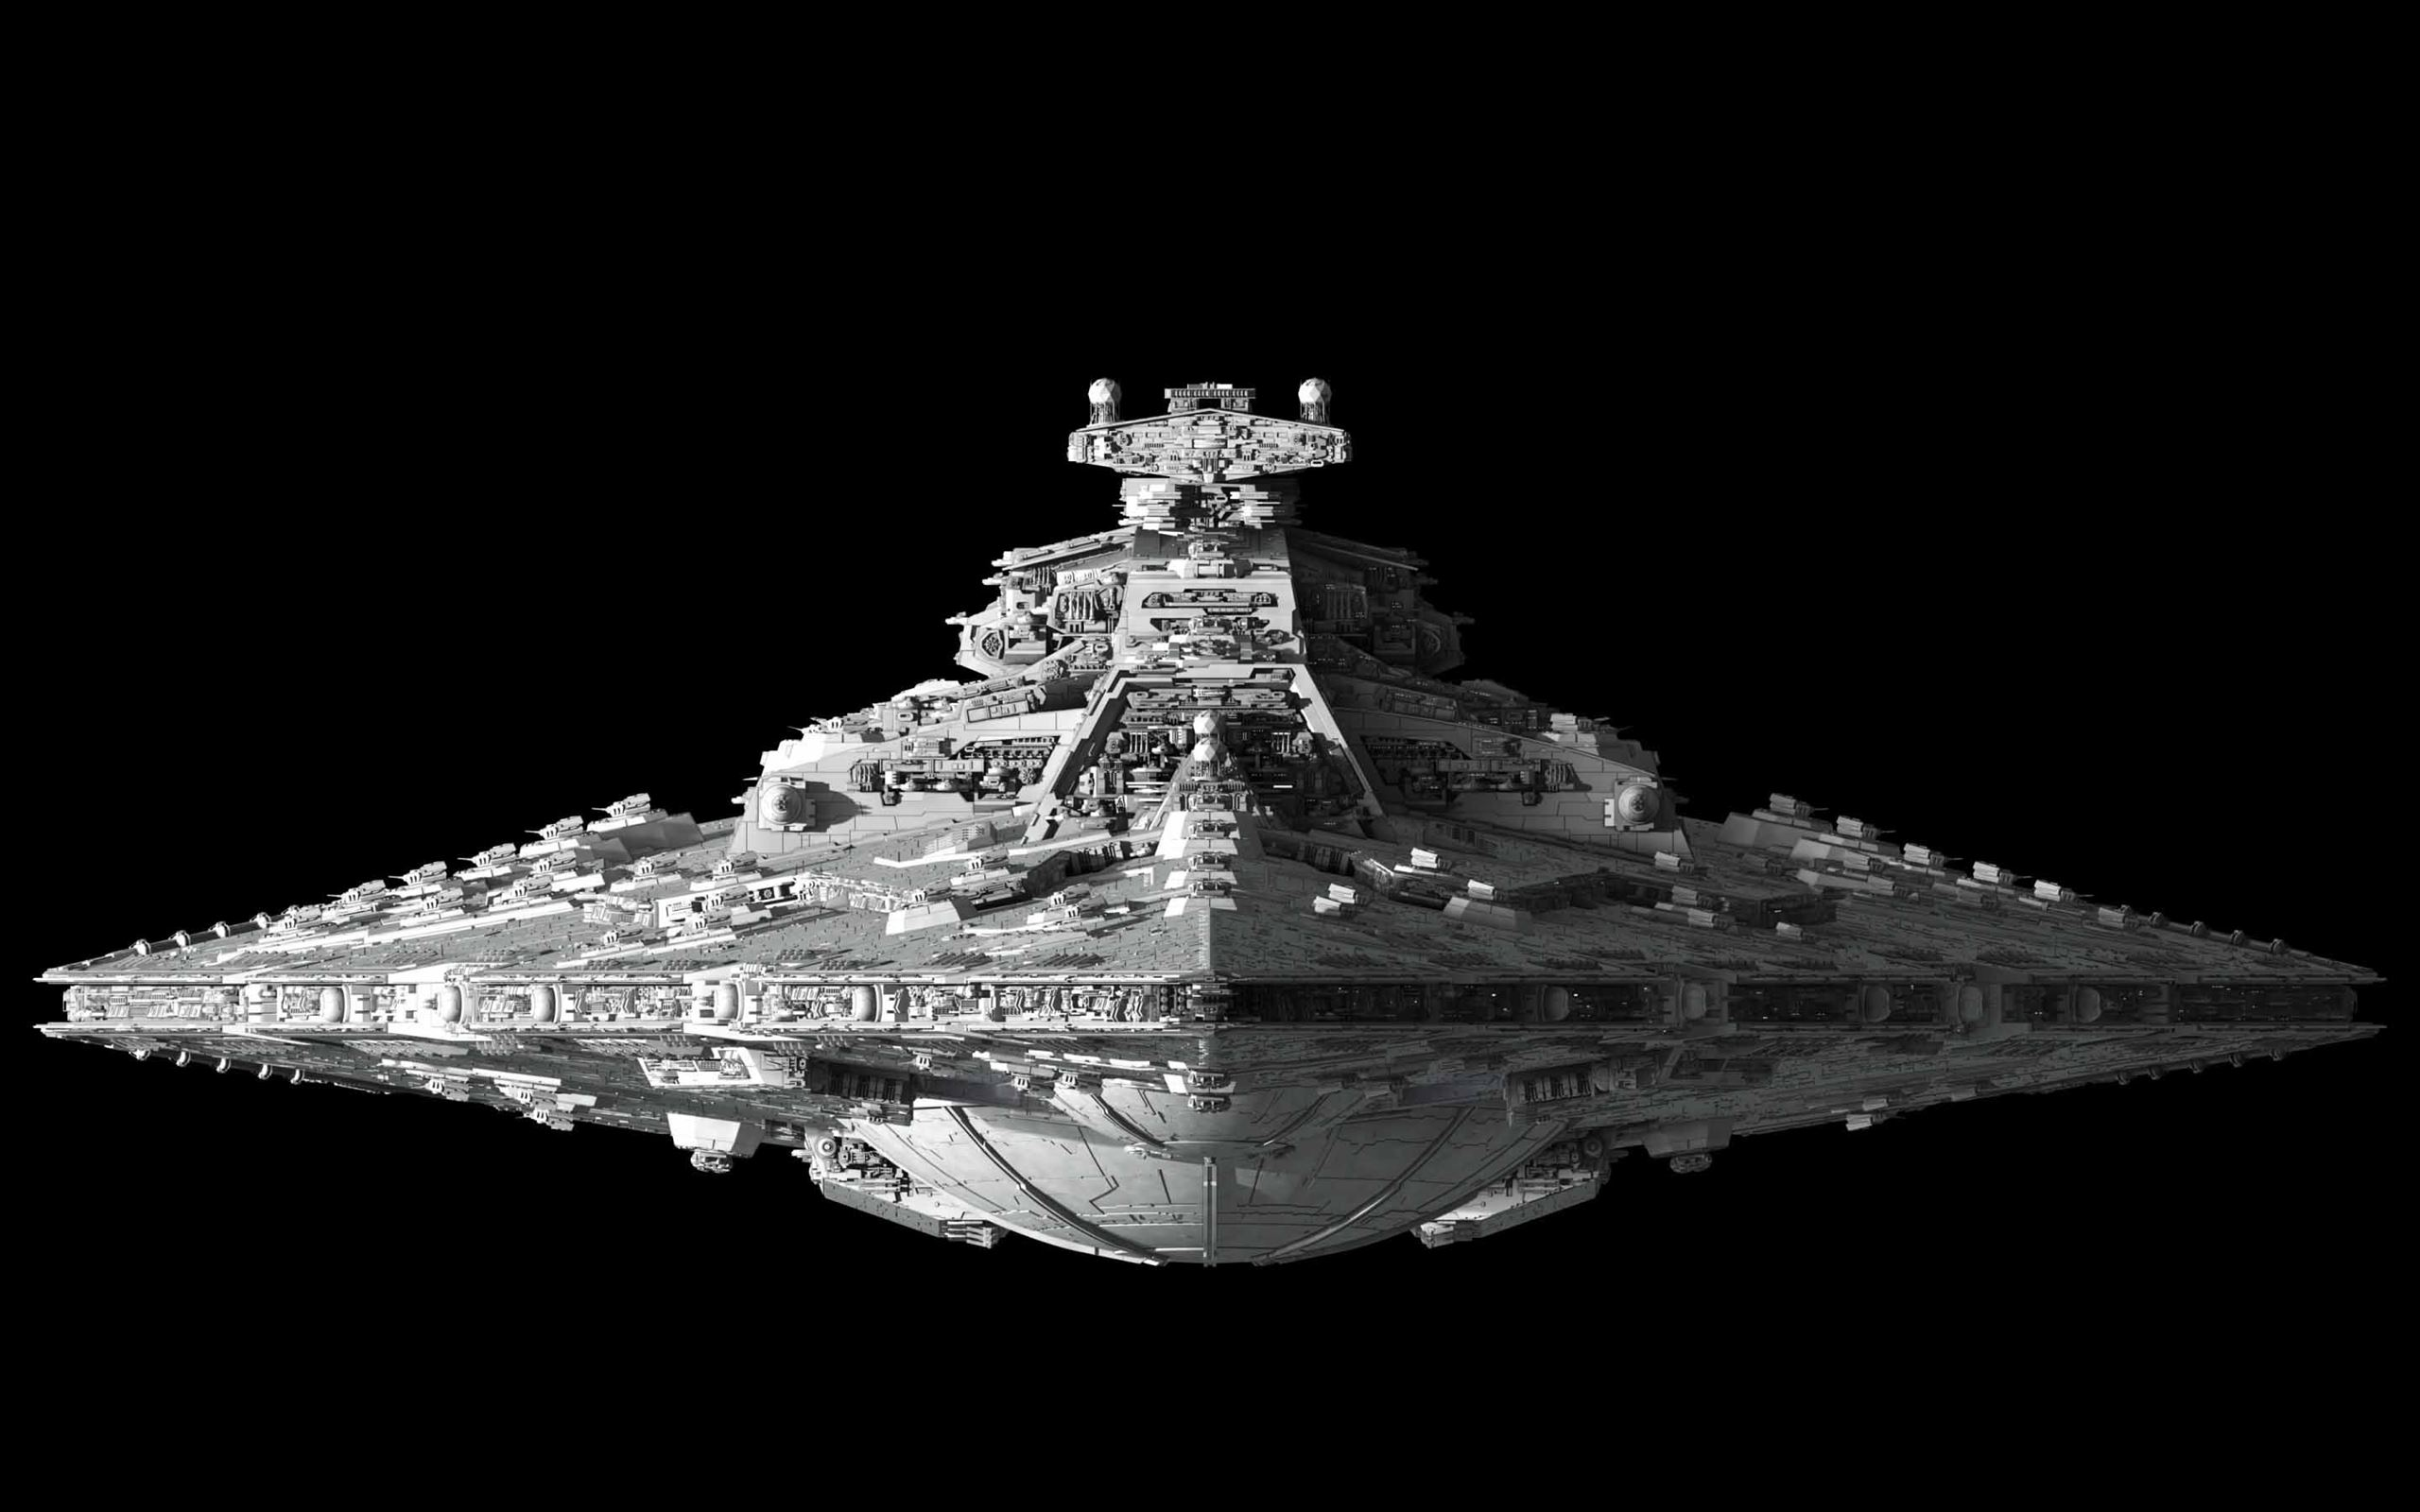 Star Wars Destroyer Macbook Air Wallpaper Download Allmacwallpaper